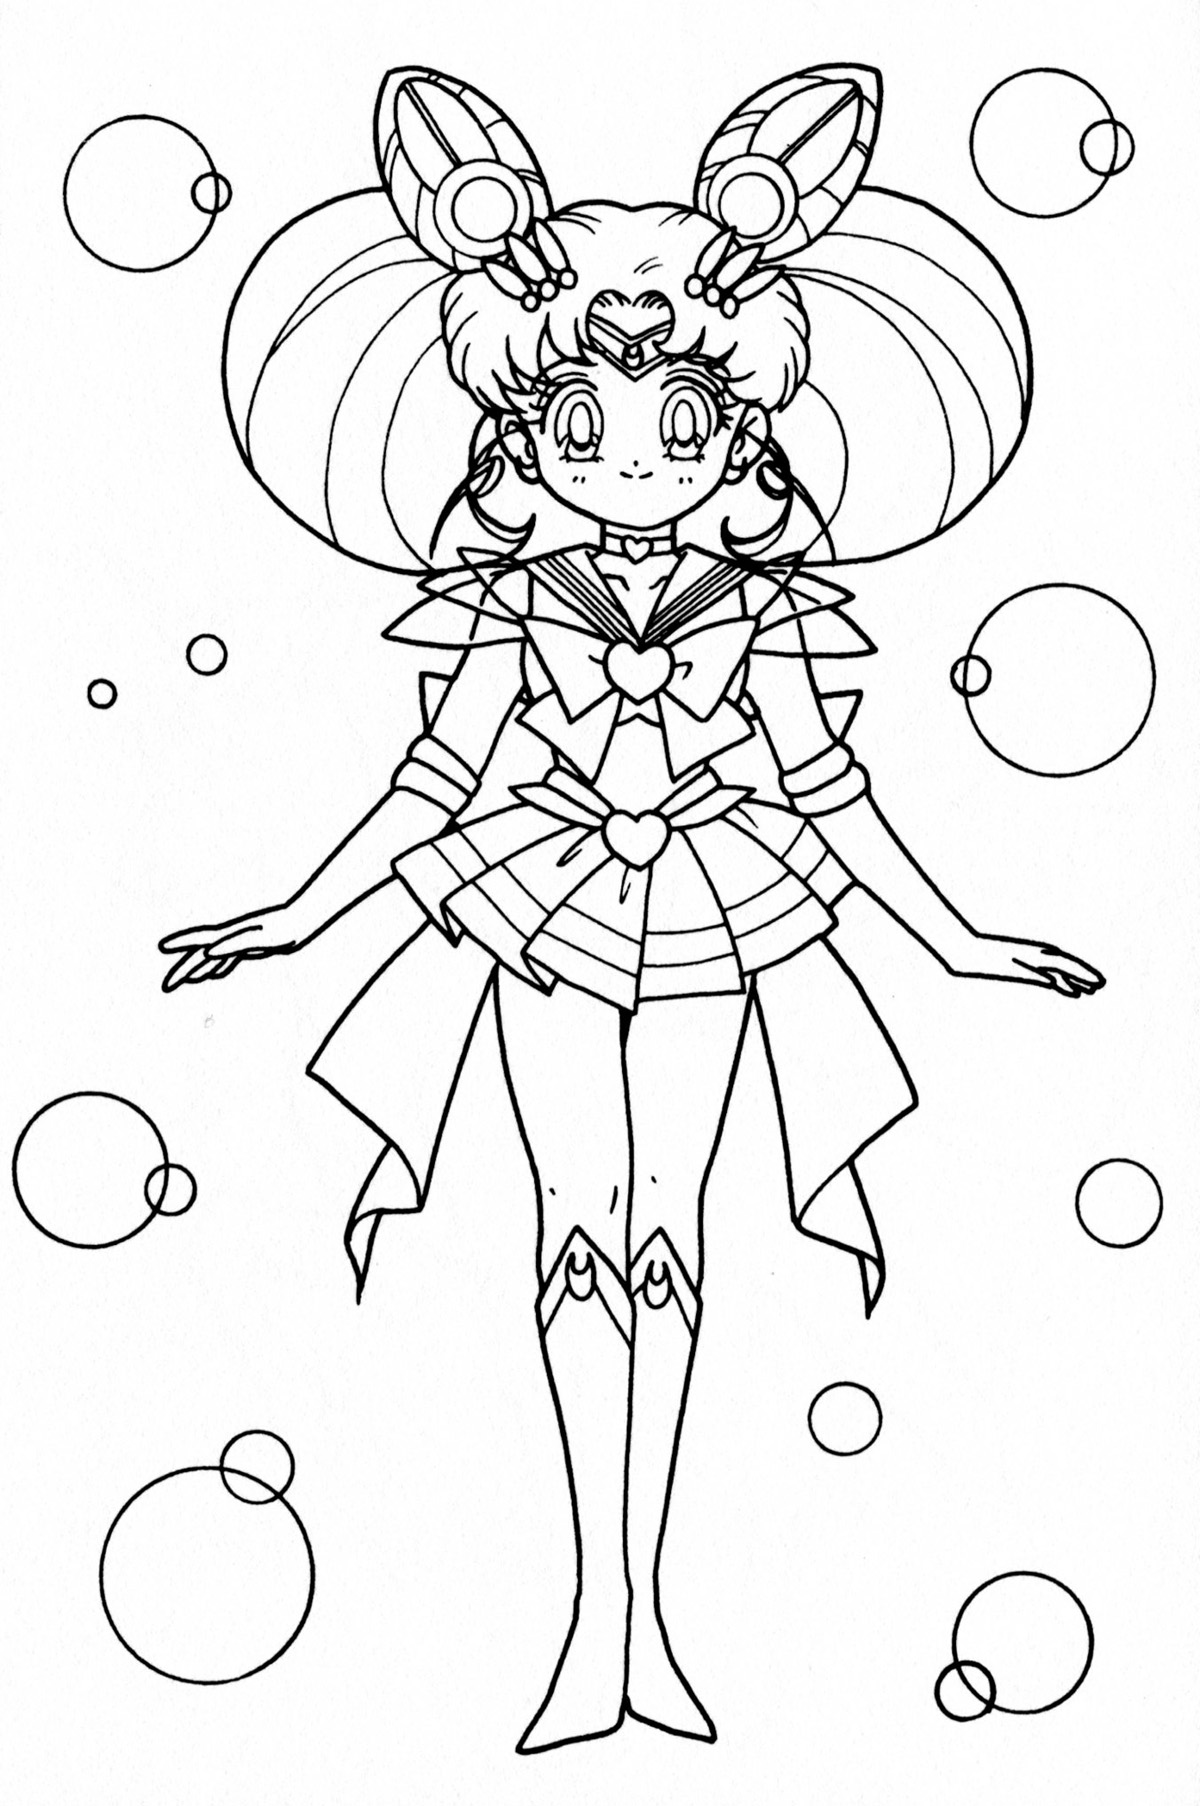 chibi moon coloring pages - photo#31